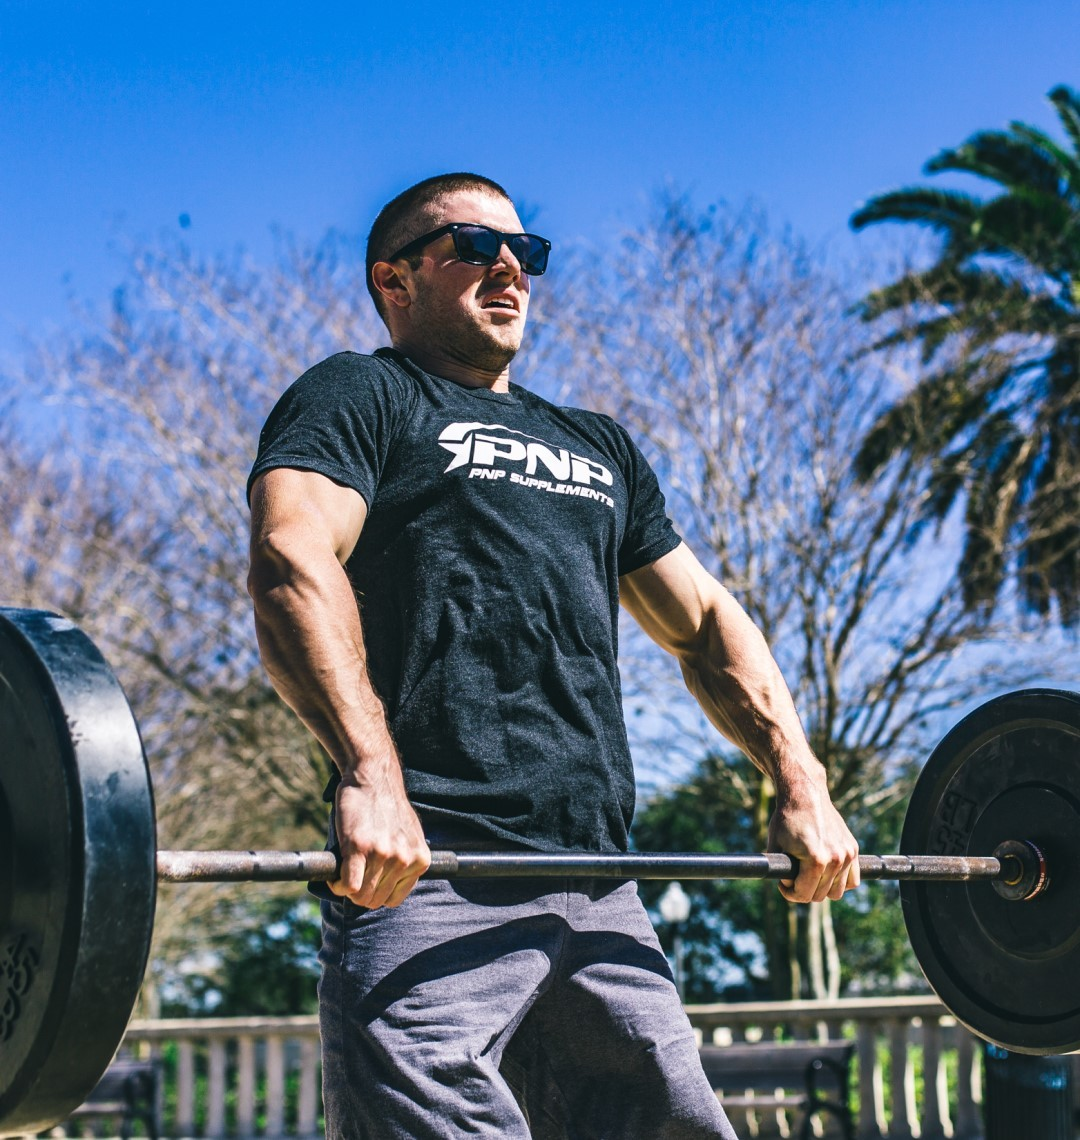 a athlete building explosive strength power with Olympic weightlifting